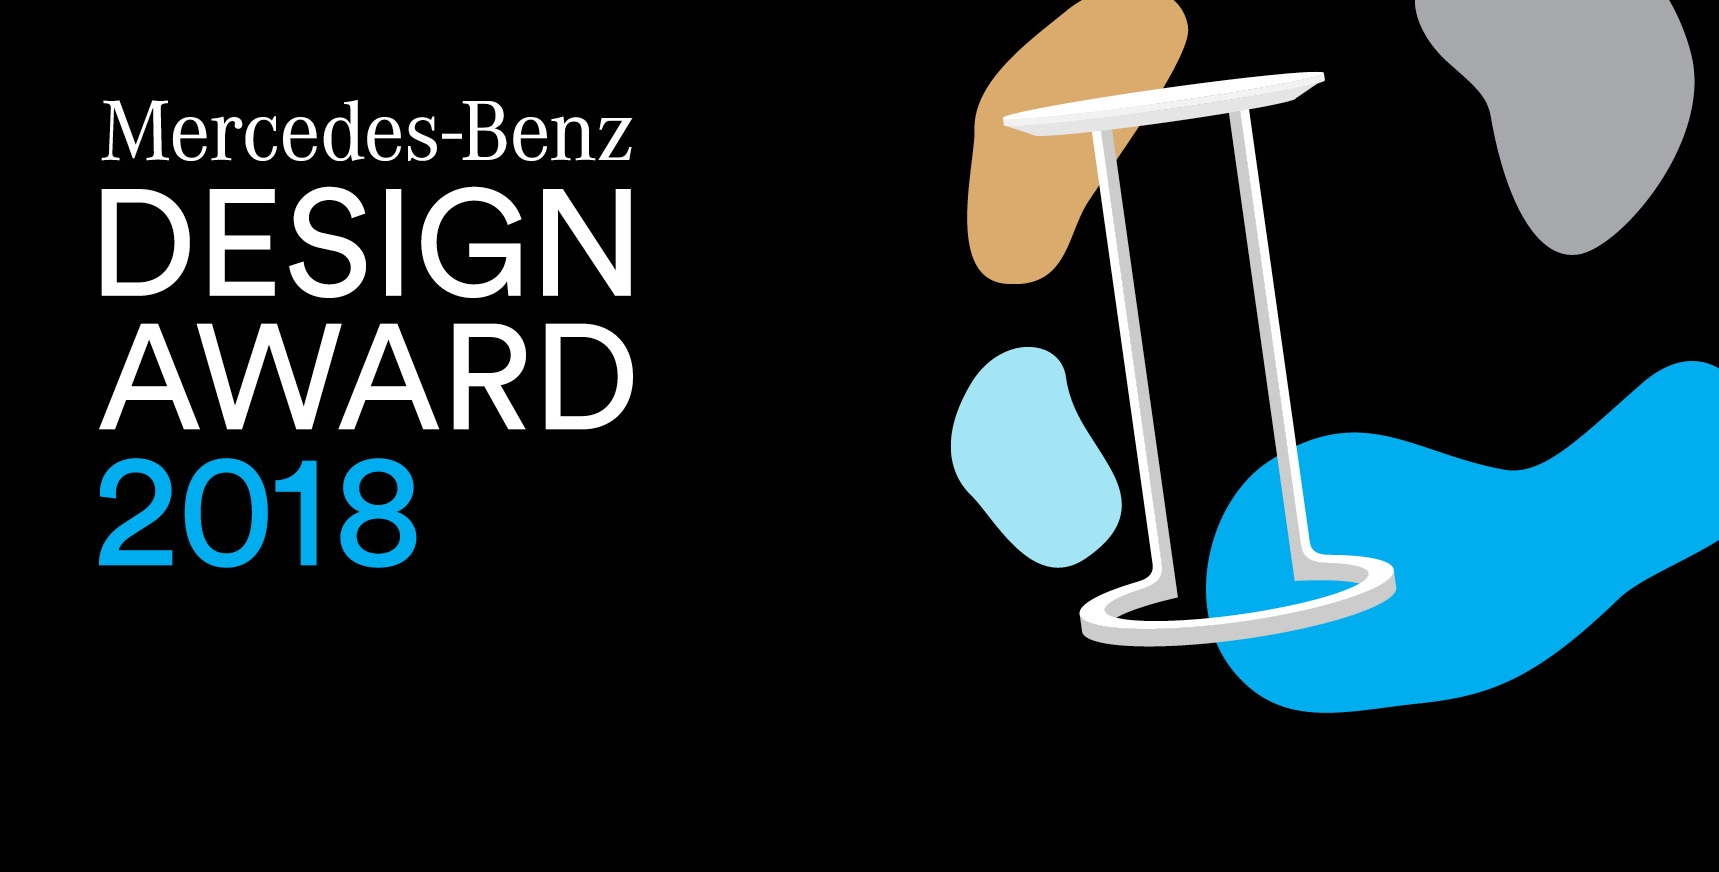 Mercedes-Benz DEsign Award